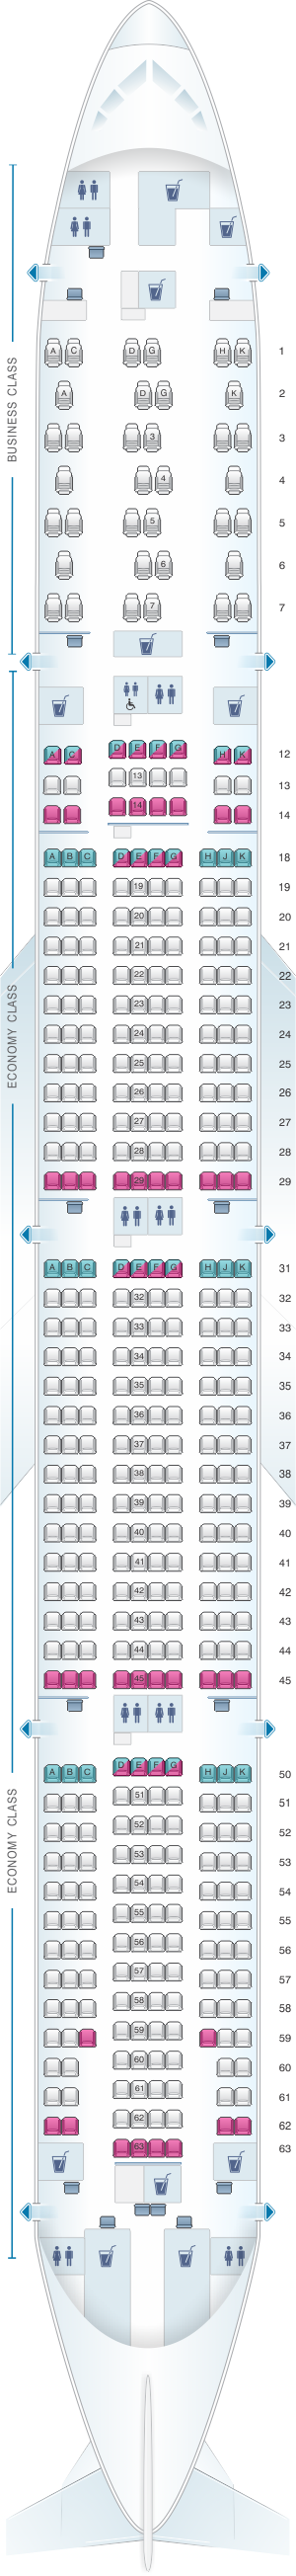 Seat map for Air Canada Boeing B777 300ER (77W) North America Layout 2